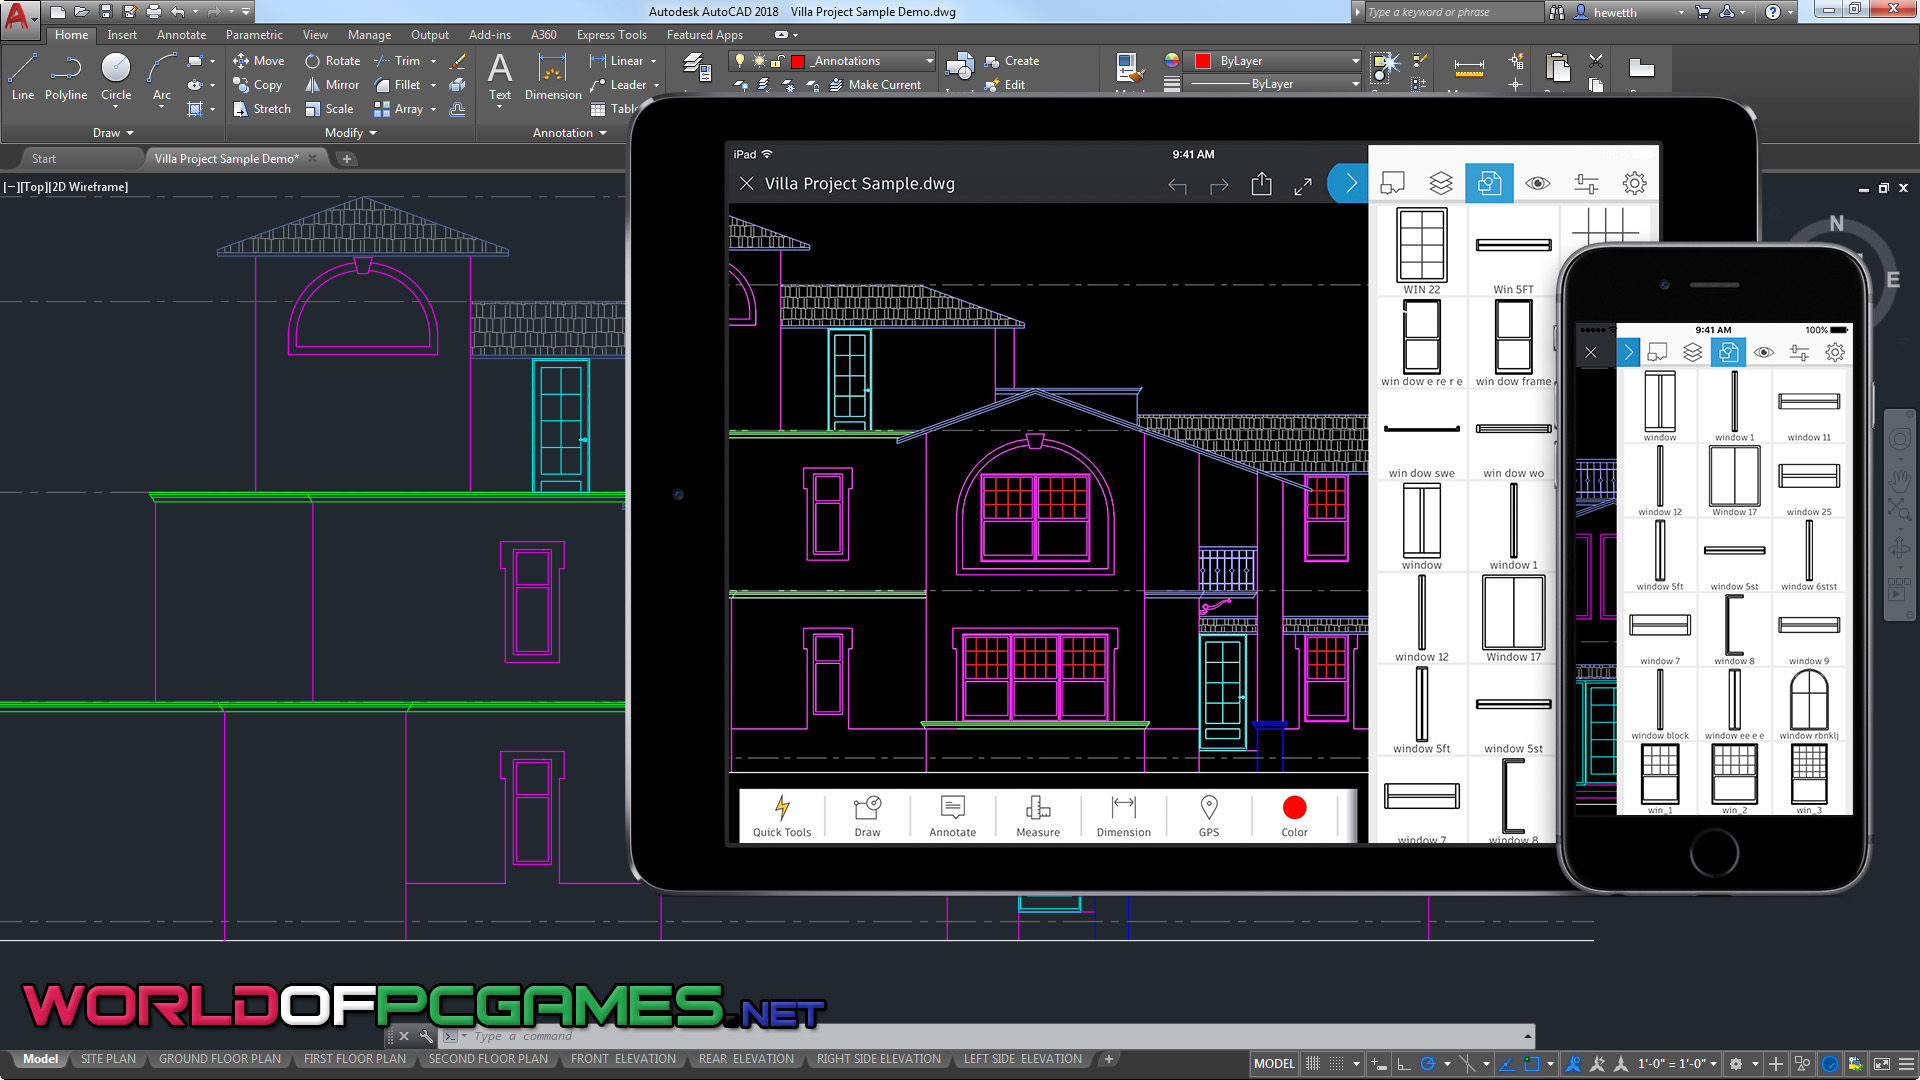 Autodesk AutoCAD 2018 Free Download By Worldofpcgames.com